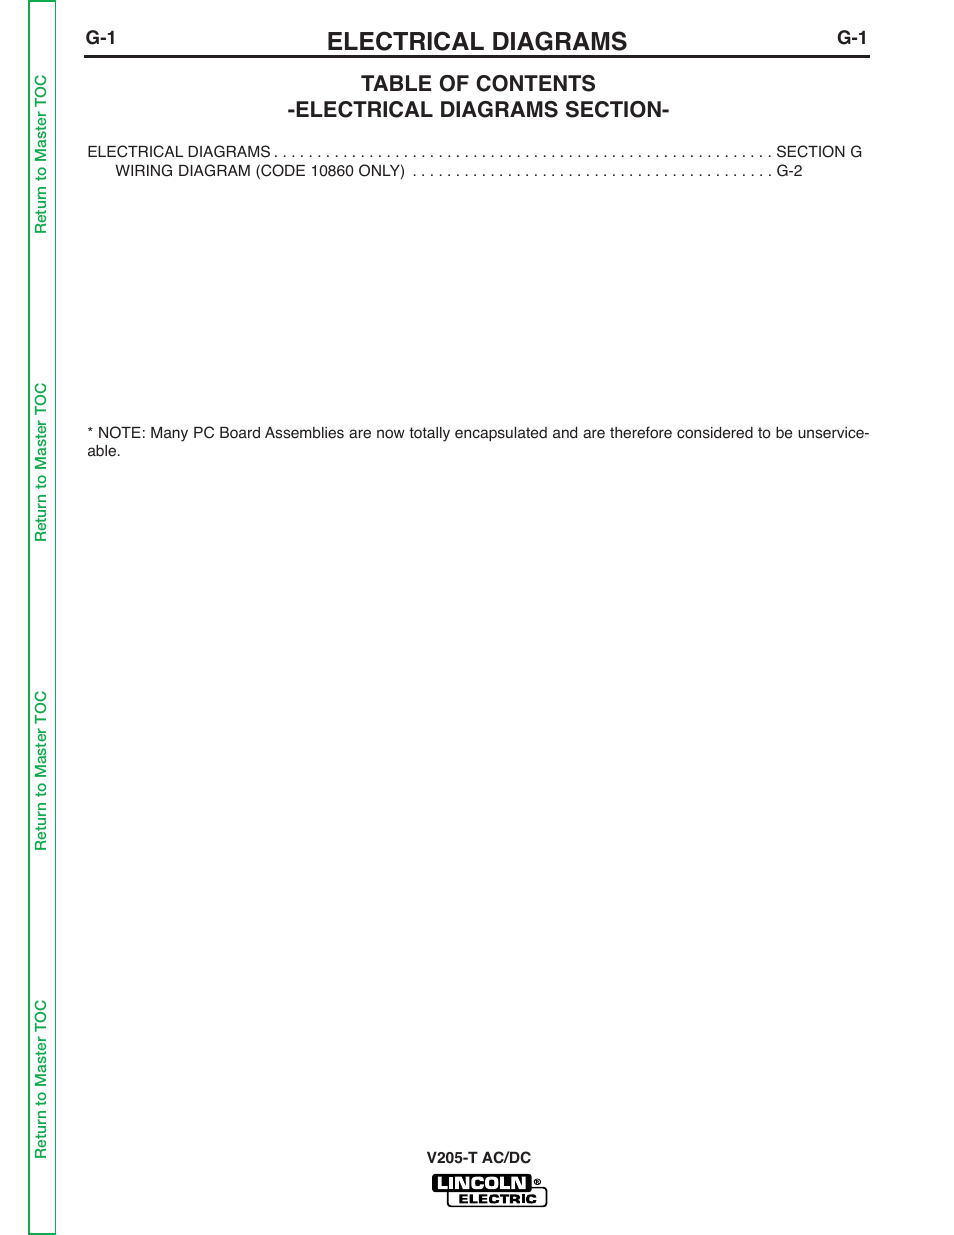 hight resolution of electrical diagrams lincoln electric invertec v205 t user manual page 107 109